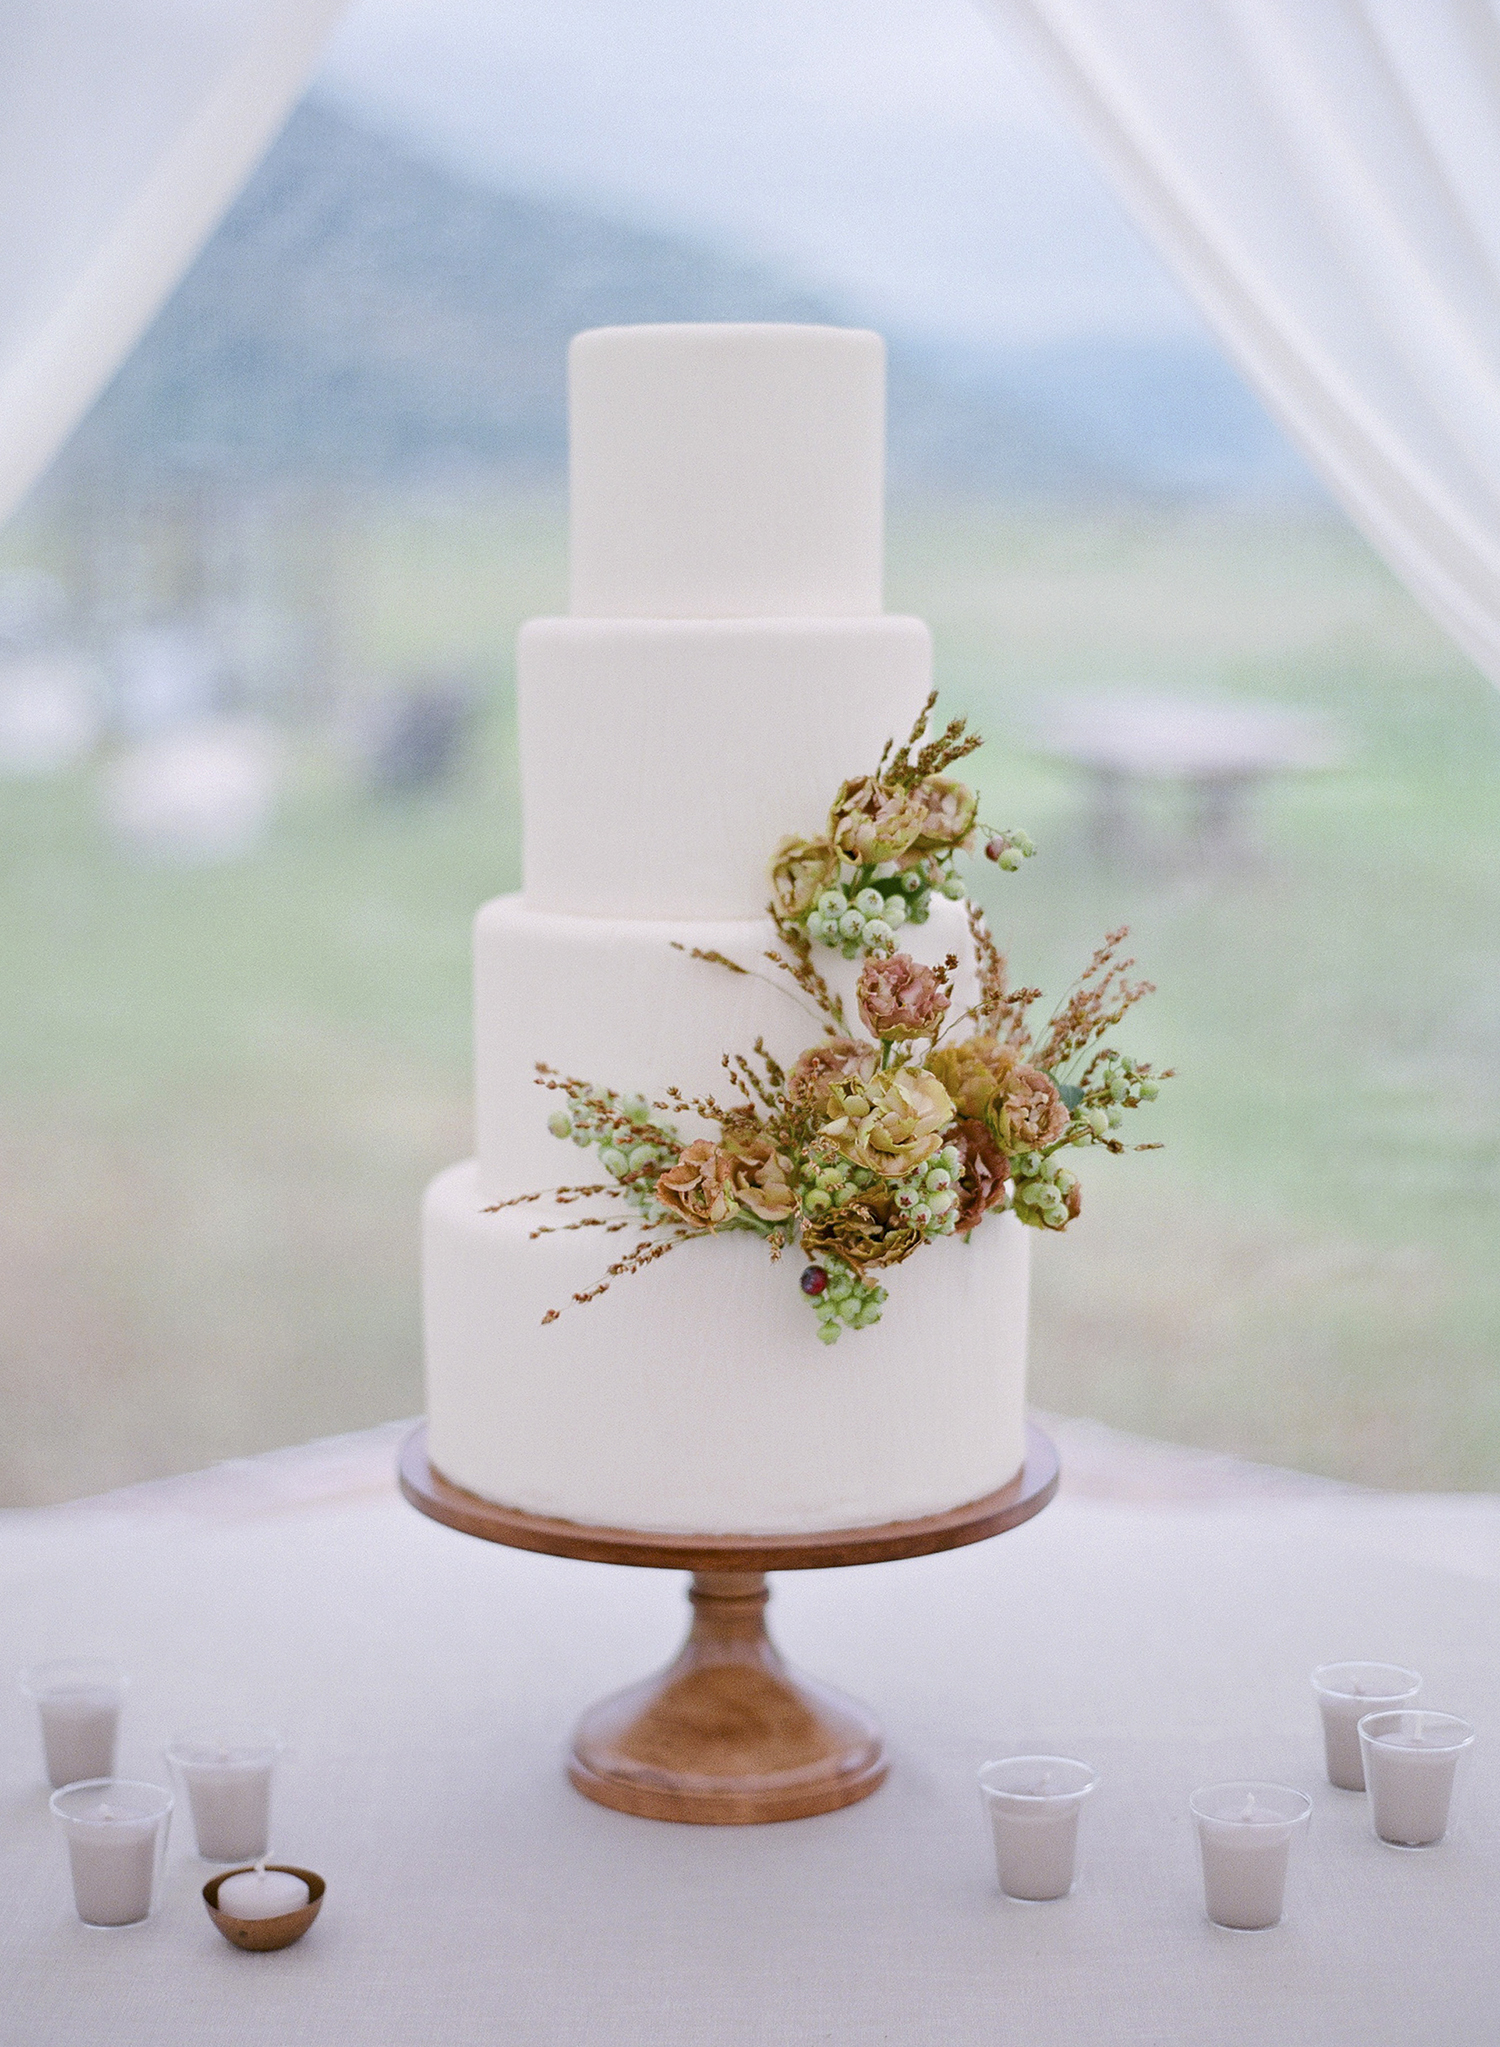 sloan scott wedding white cake with flowers